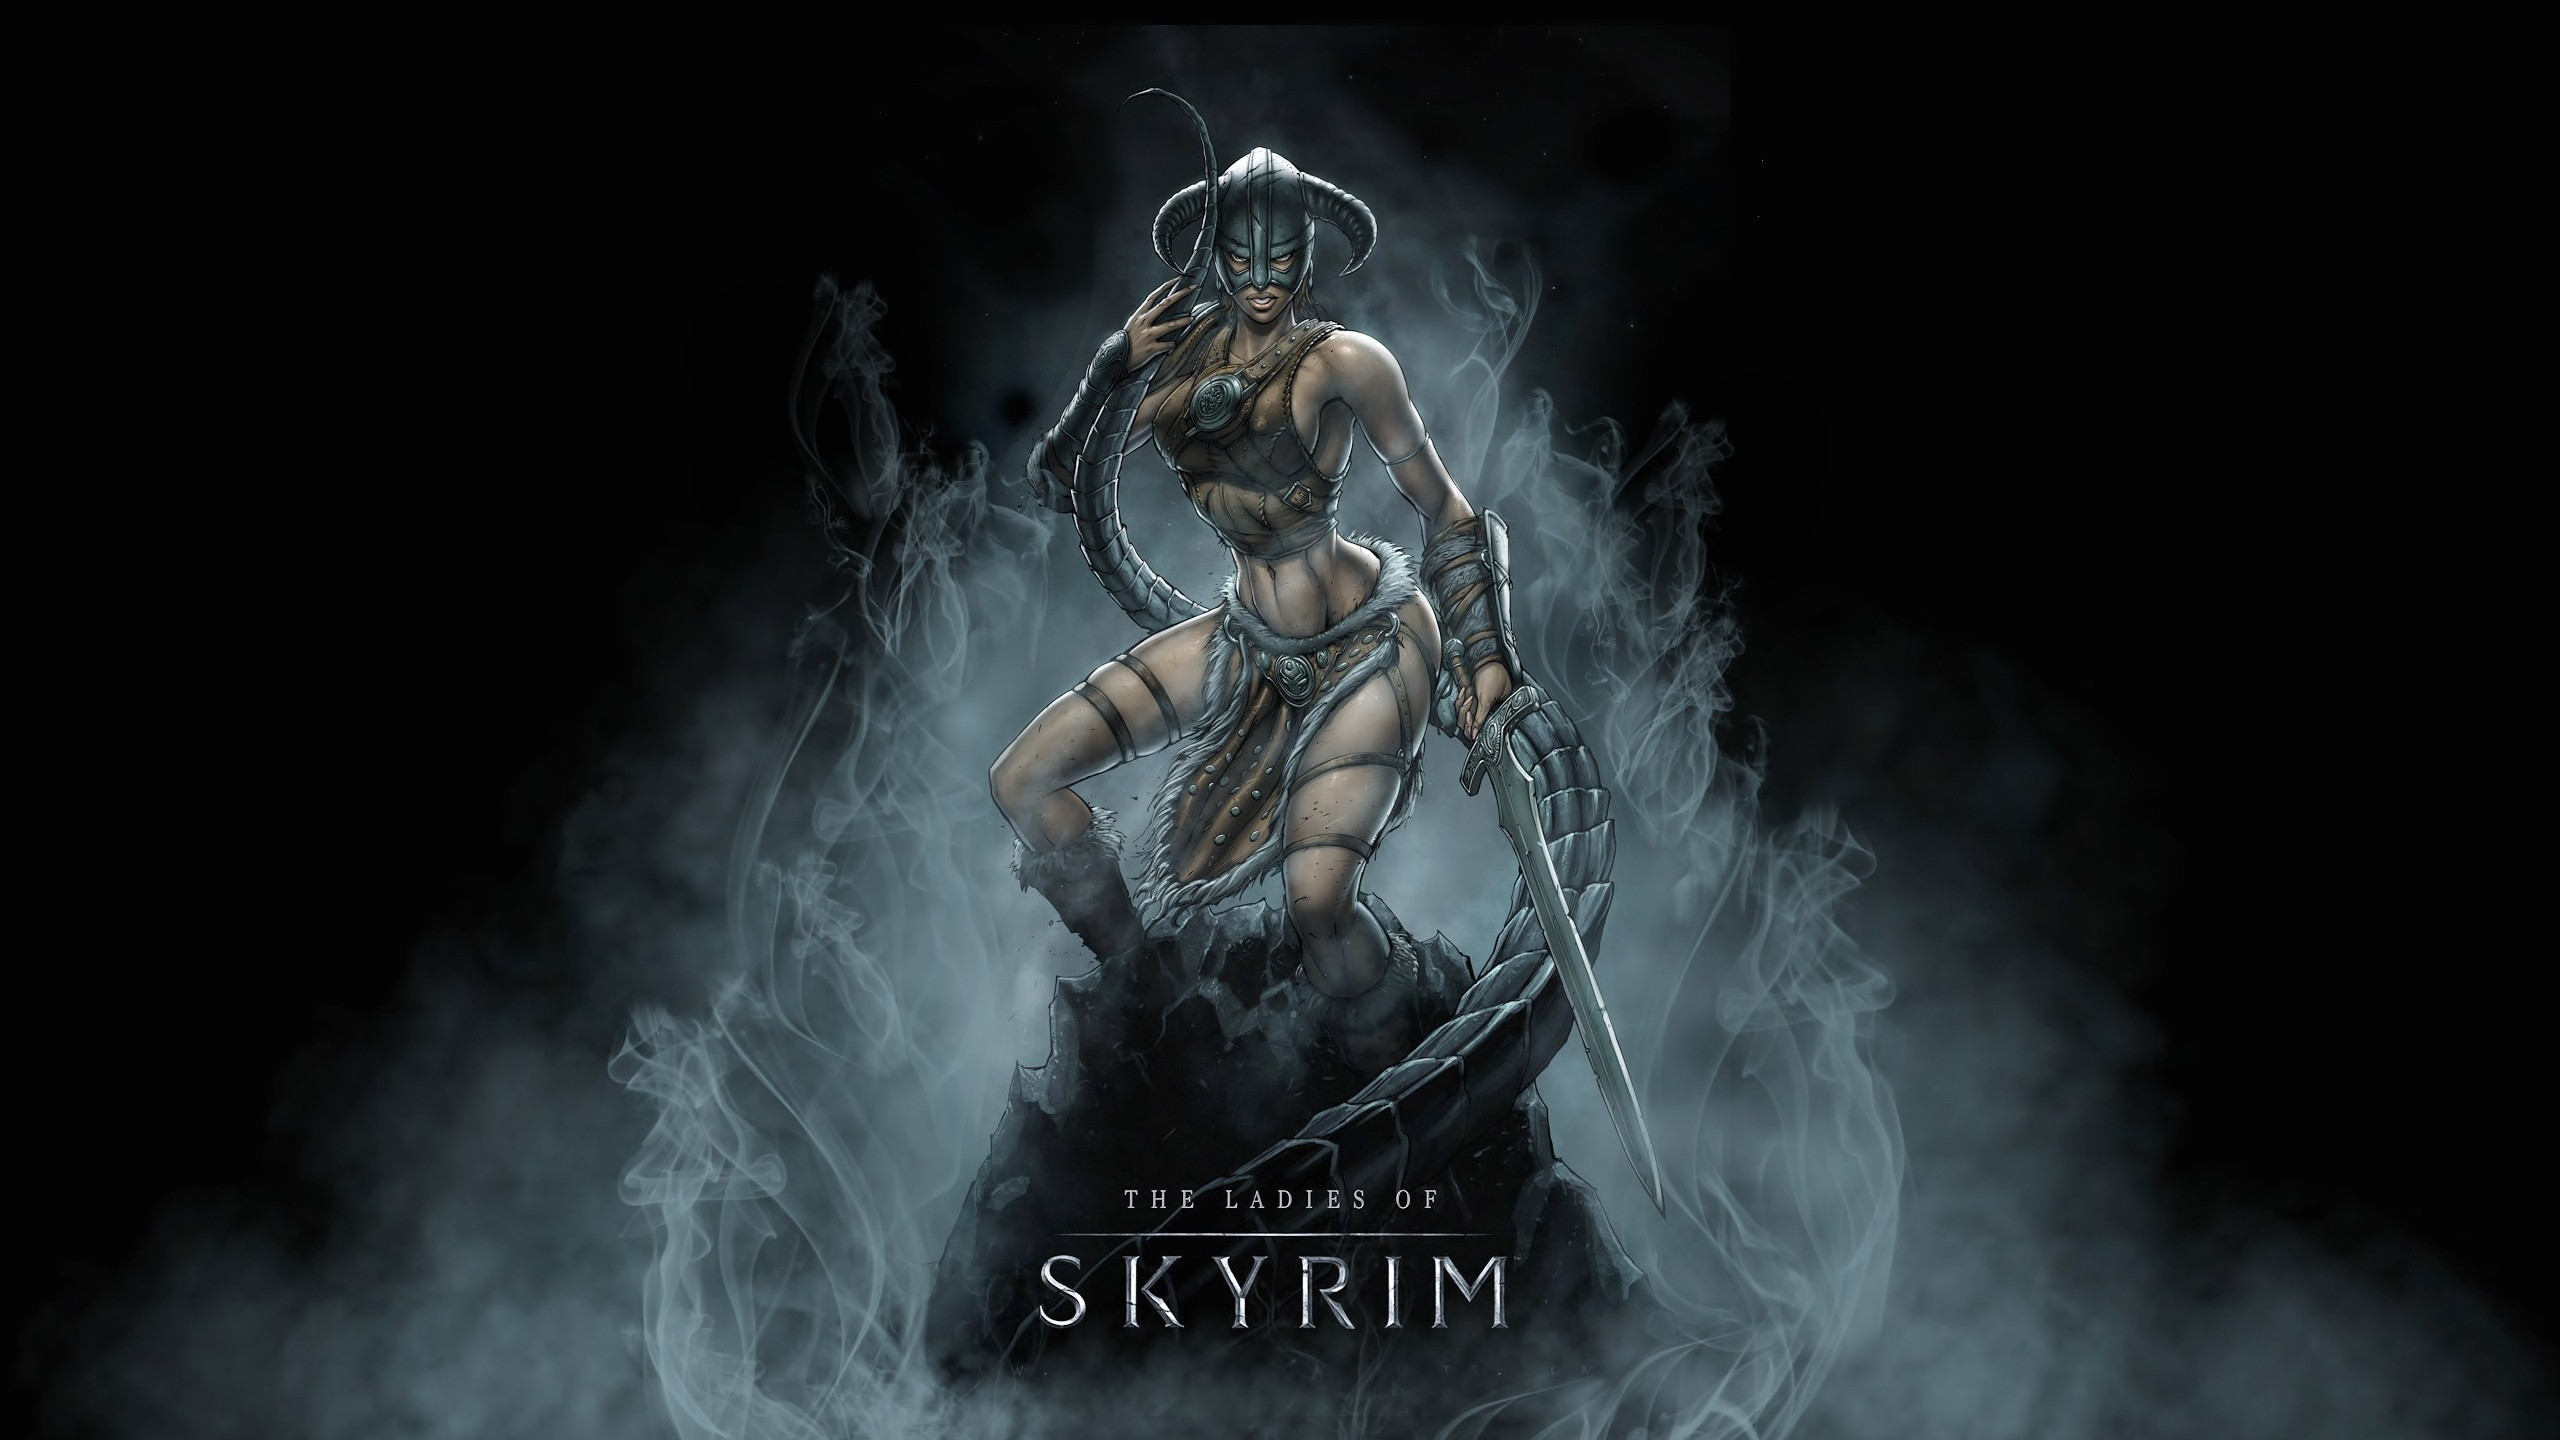 The Elder Scrolls V: Skyrim wallpaper » page 3 » The Elder ...